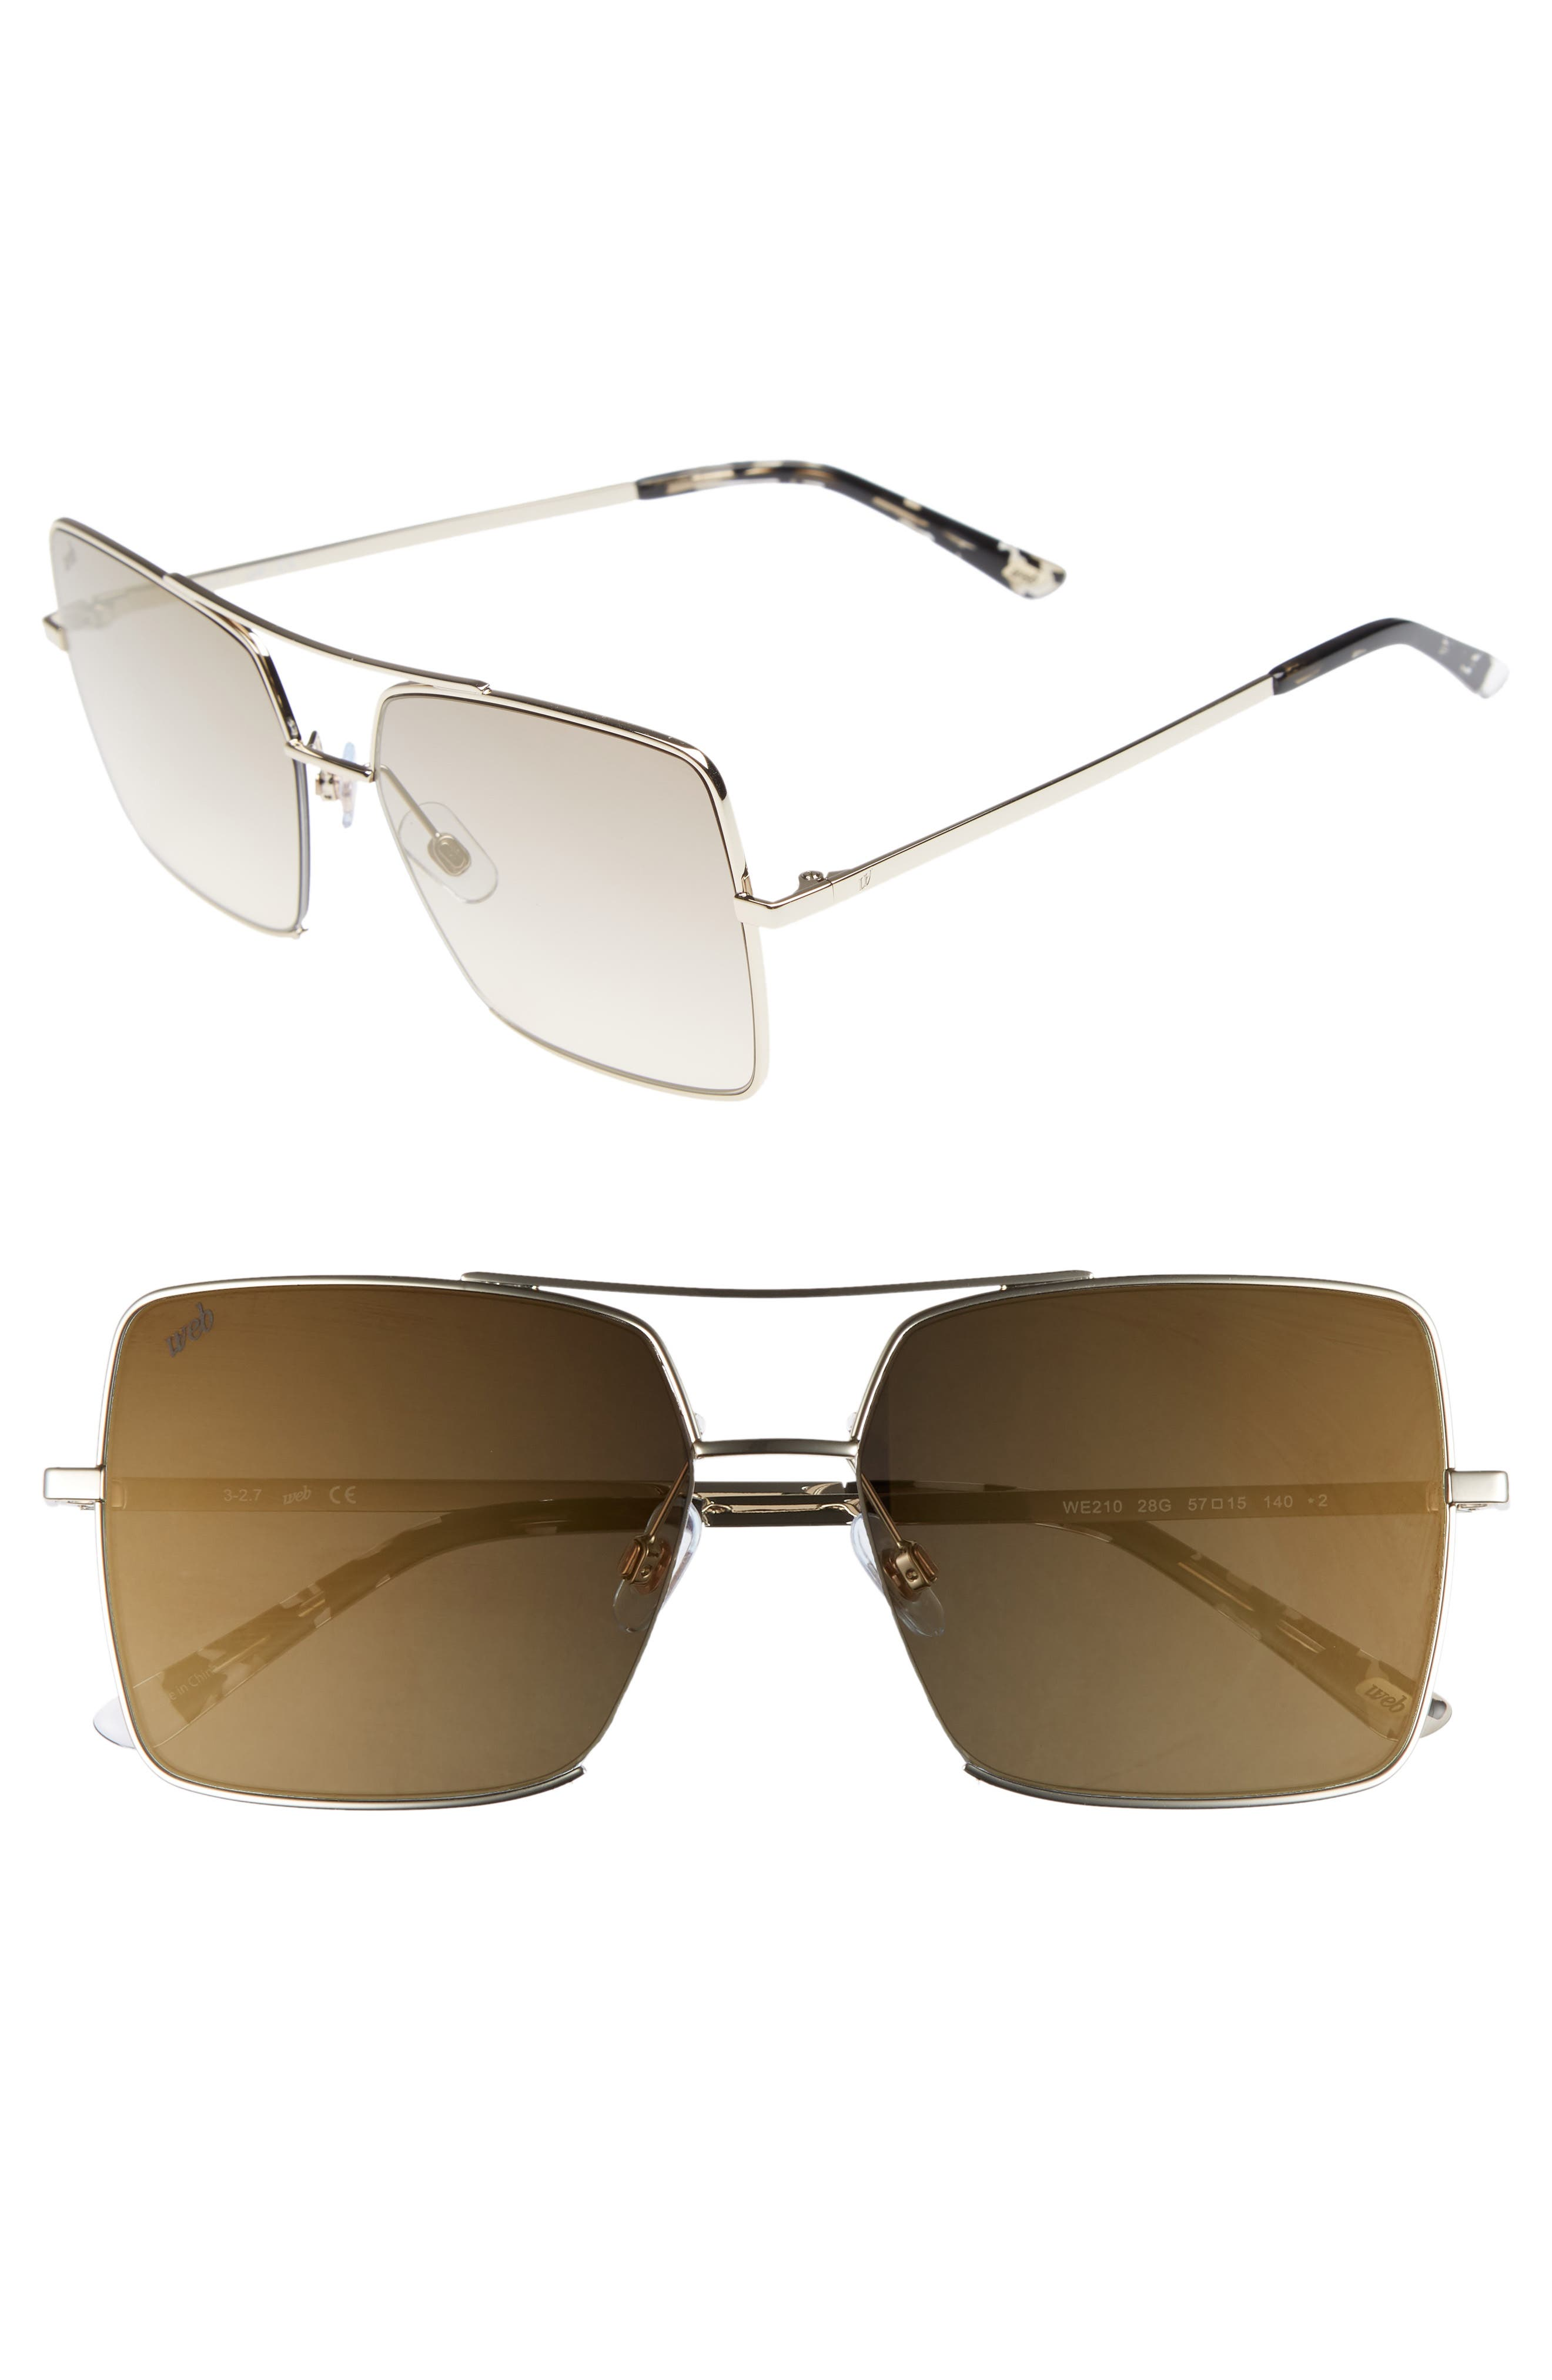 57mm Square Metal Aviator Sunglasses,                             Main thumbnail 1, color,                             GOLD/ BROWN